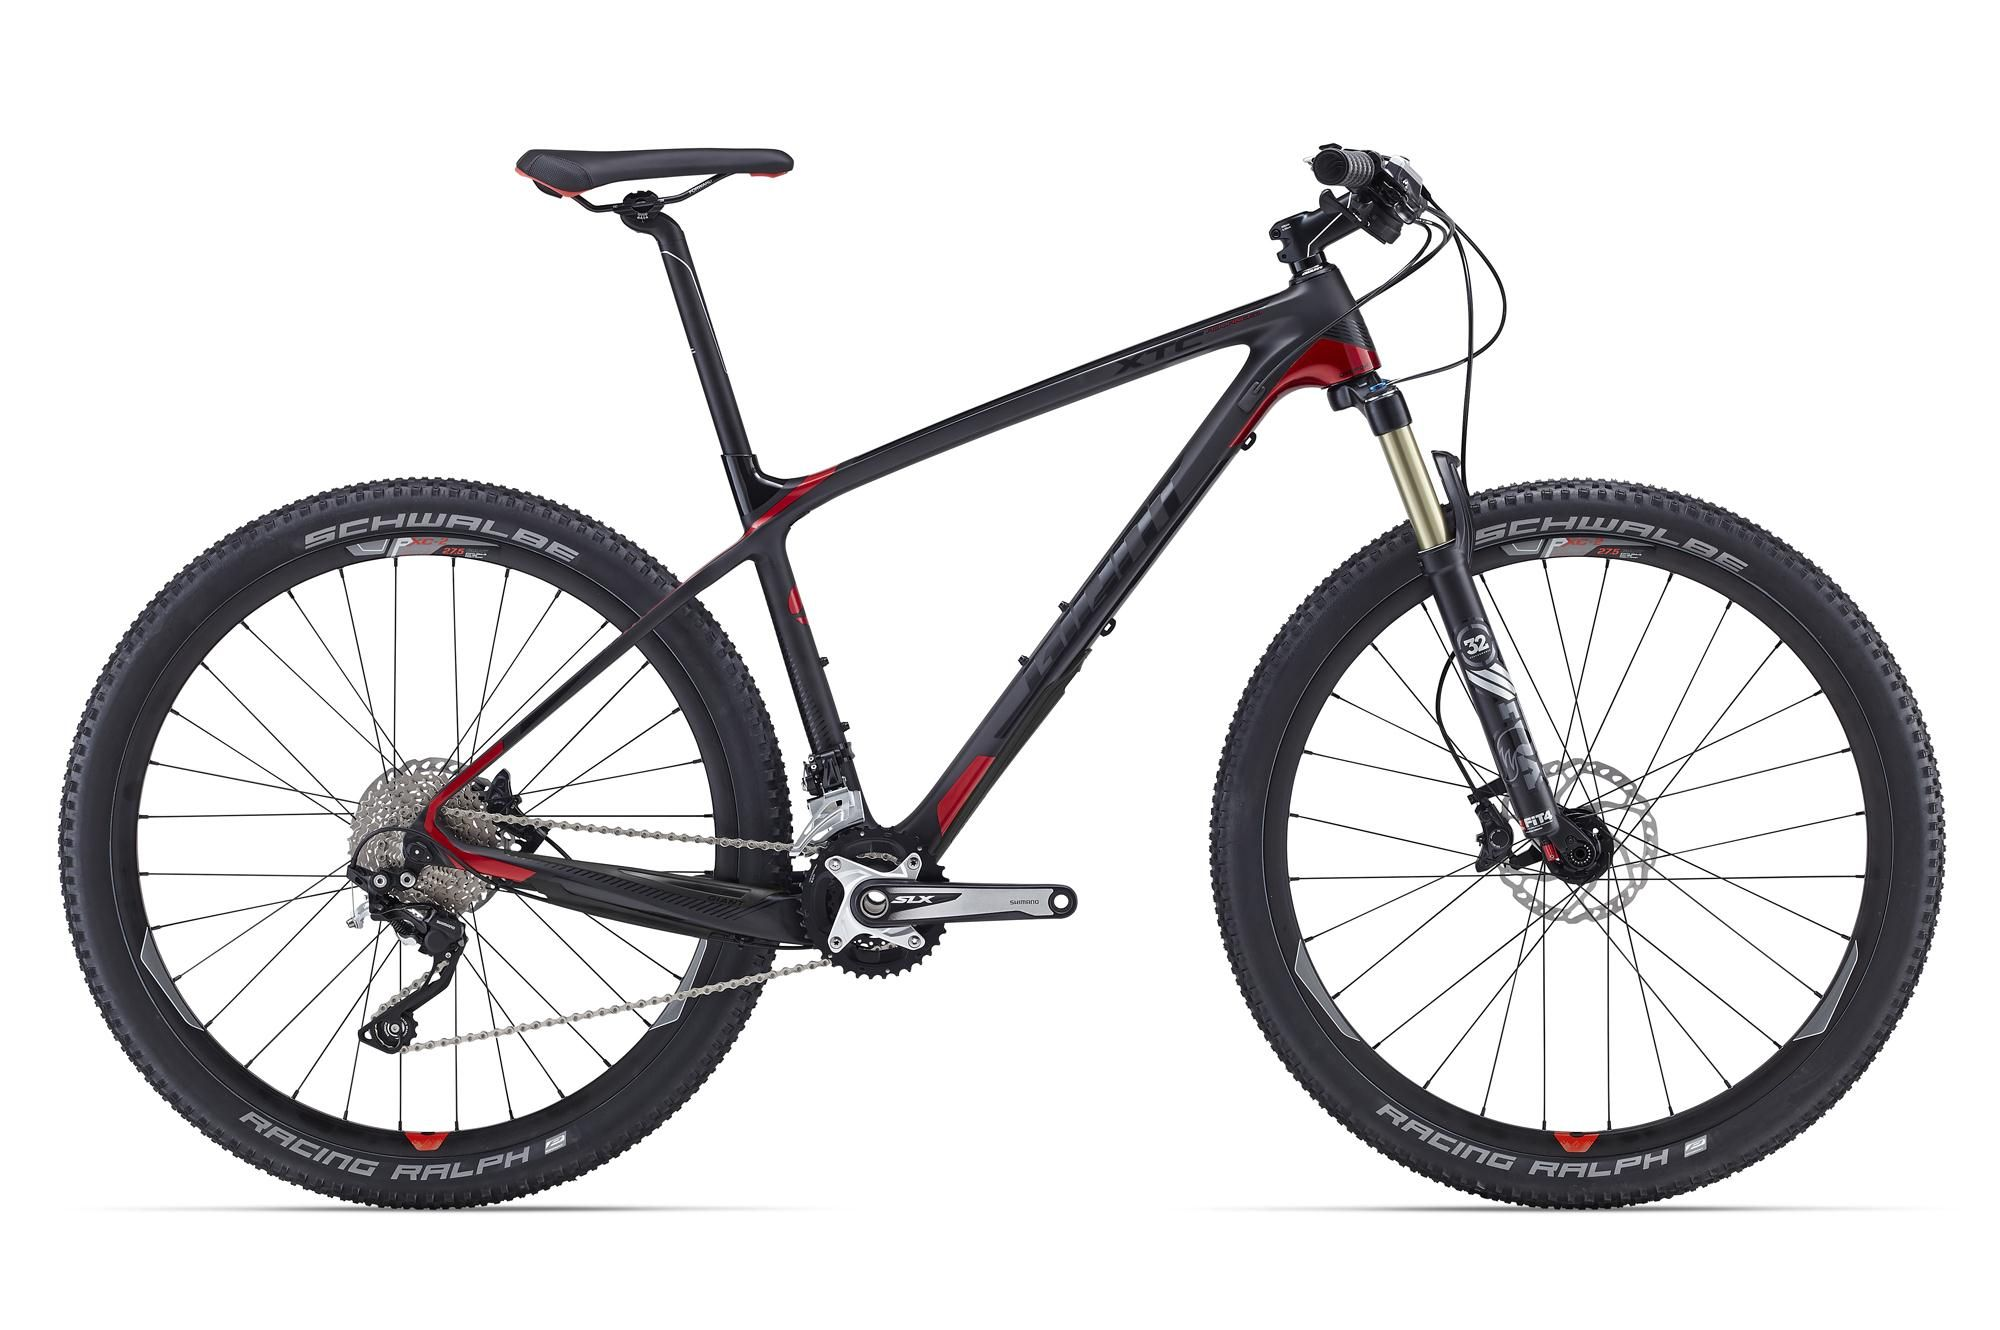 Велосипед Giant XtC Advanced 27.5 2 2016 велосипед giant trinity advanced pro 0 2016